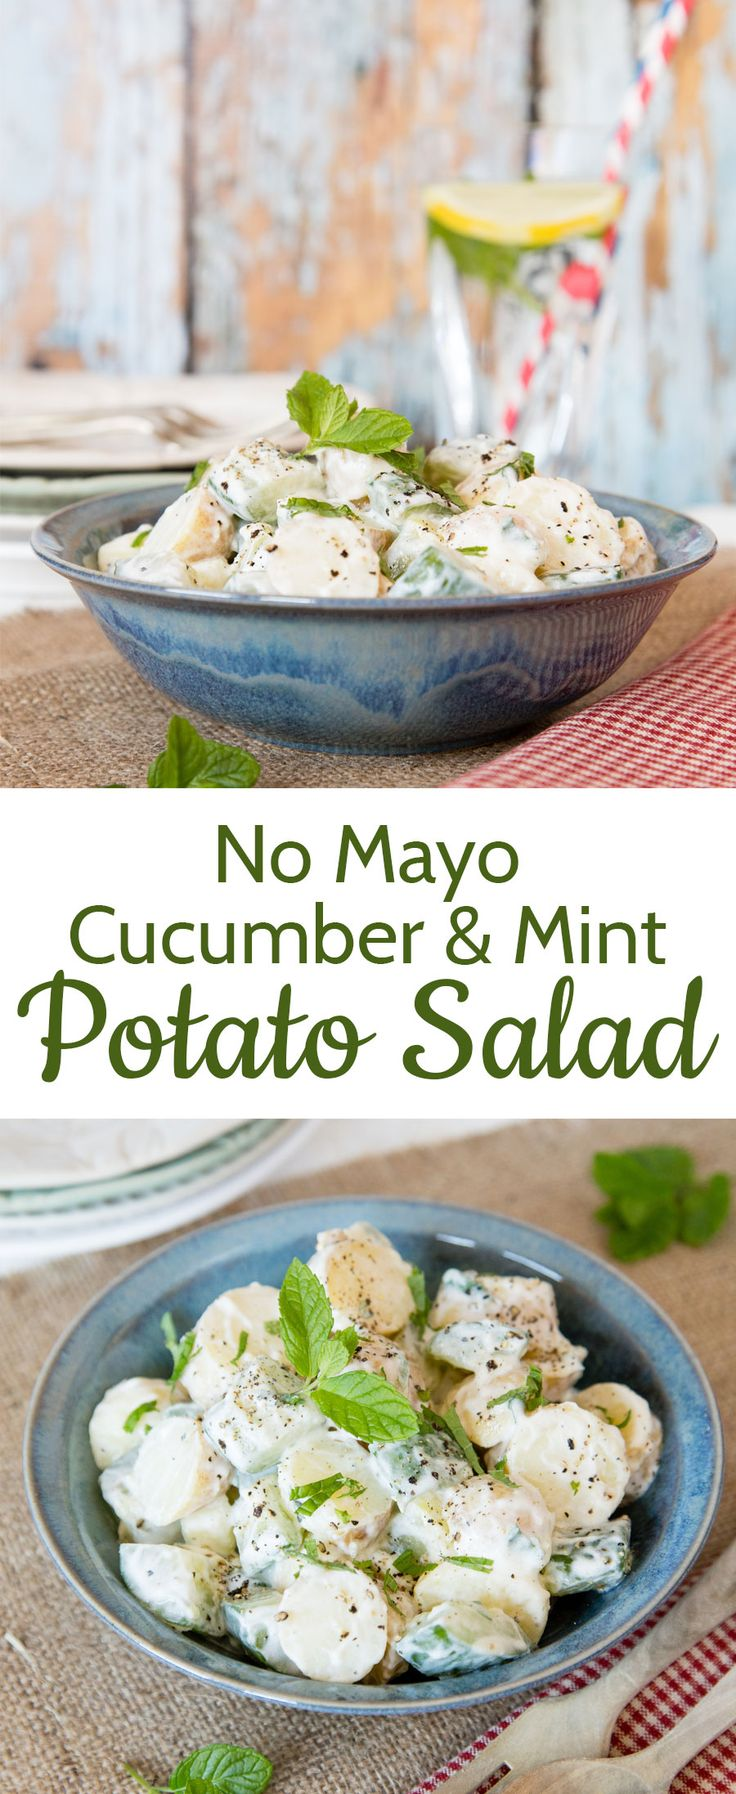 This healthy potato salad is made without mayo and includes cool mint and cucumber for a low heat, simple summer side dish.